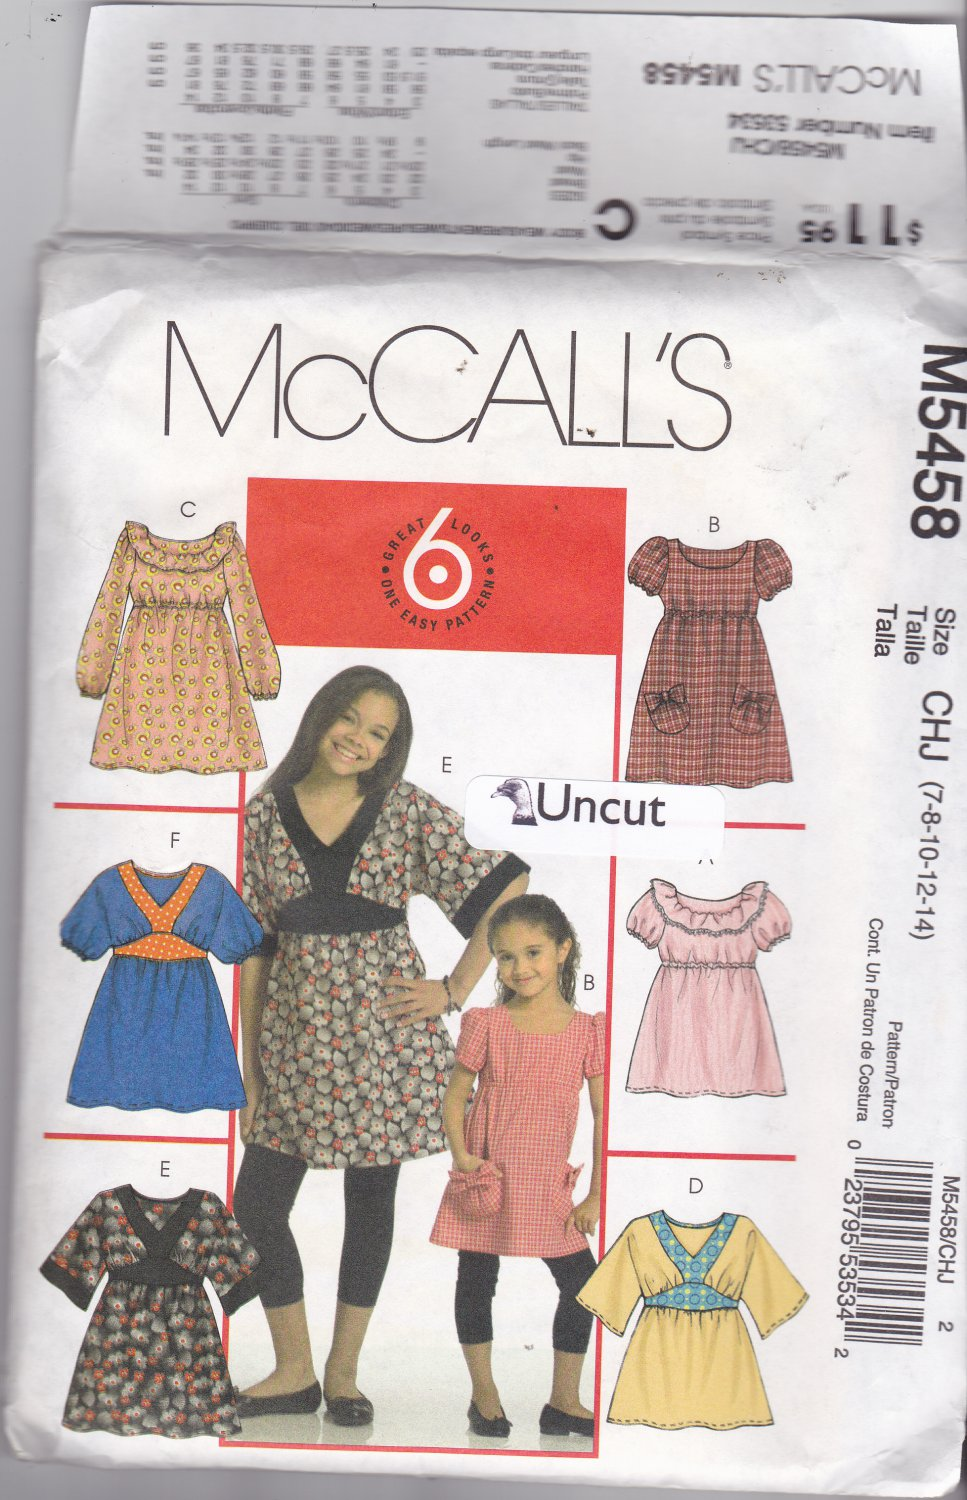 McCall's M5458 Pattern Uncut size 7 8 10 12 14 Girls Pullover Top Dress Ruffles Contrast Bands